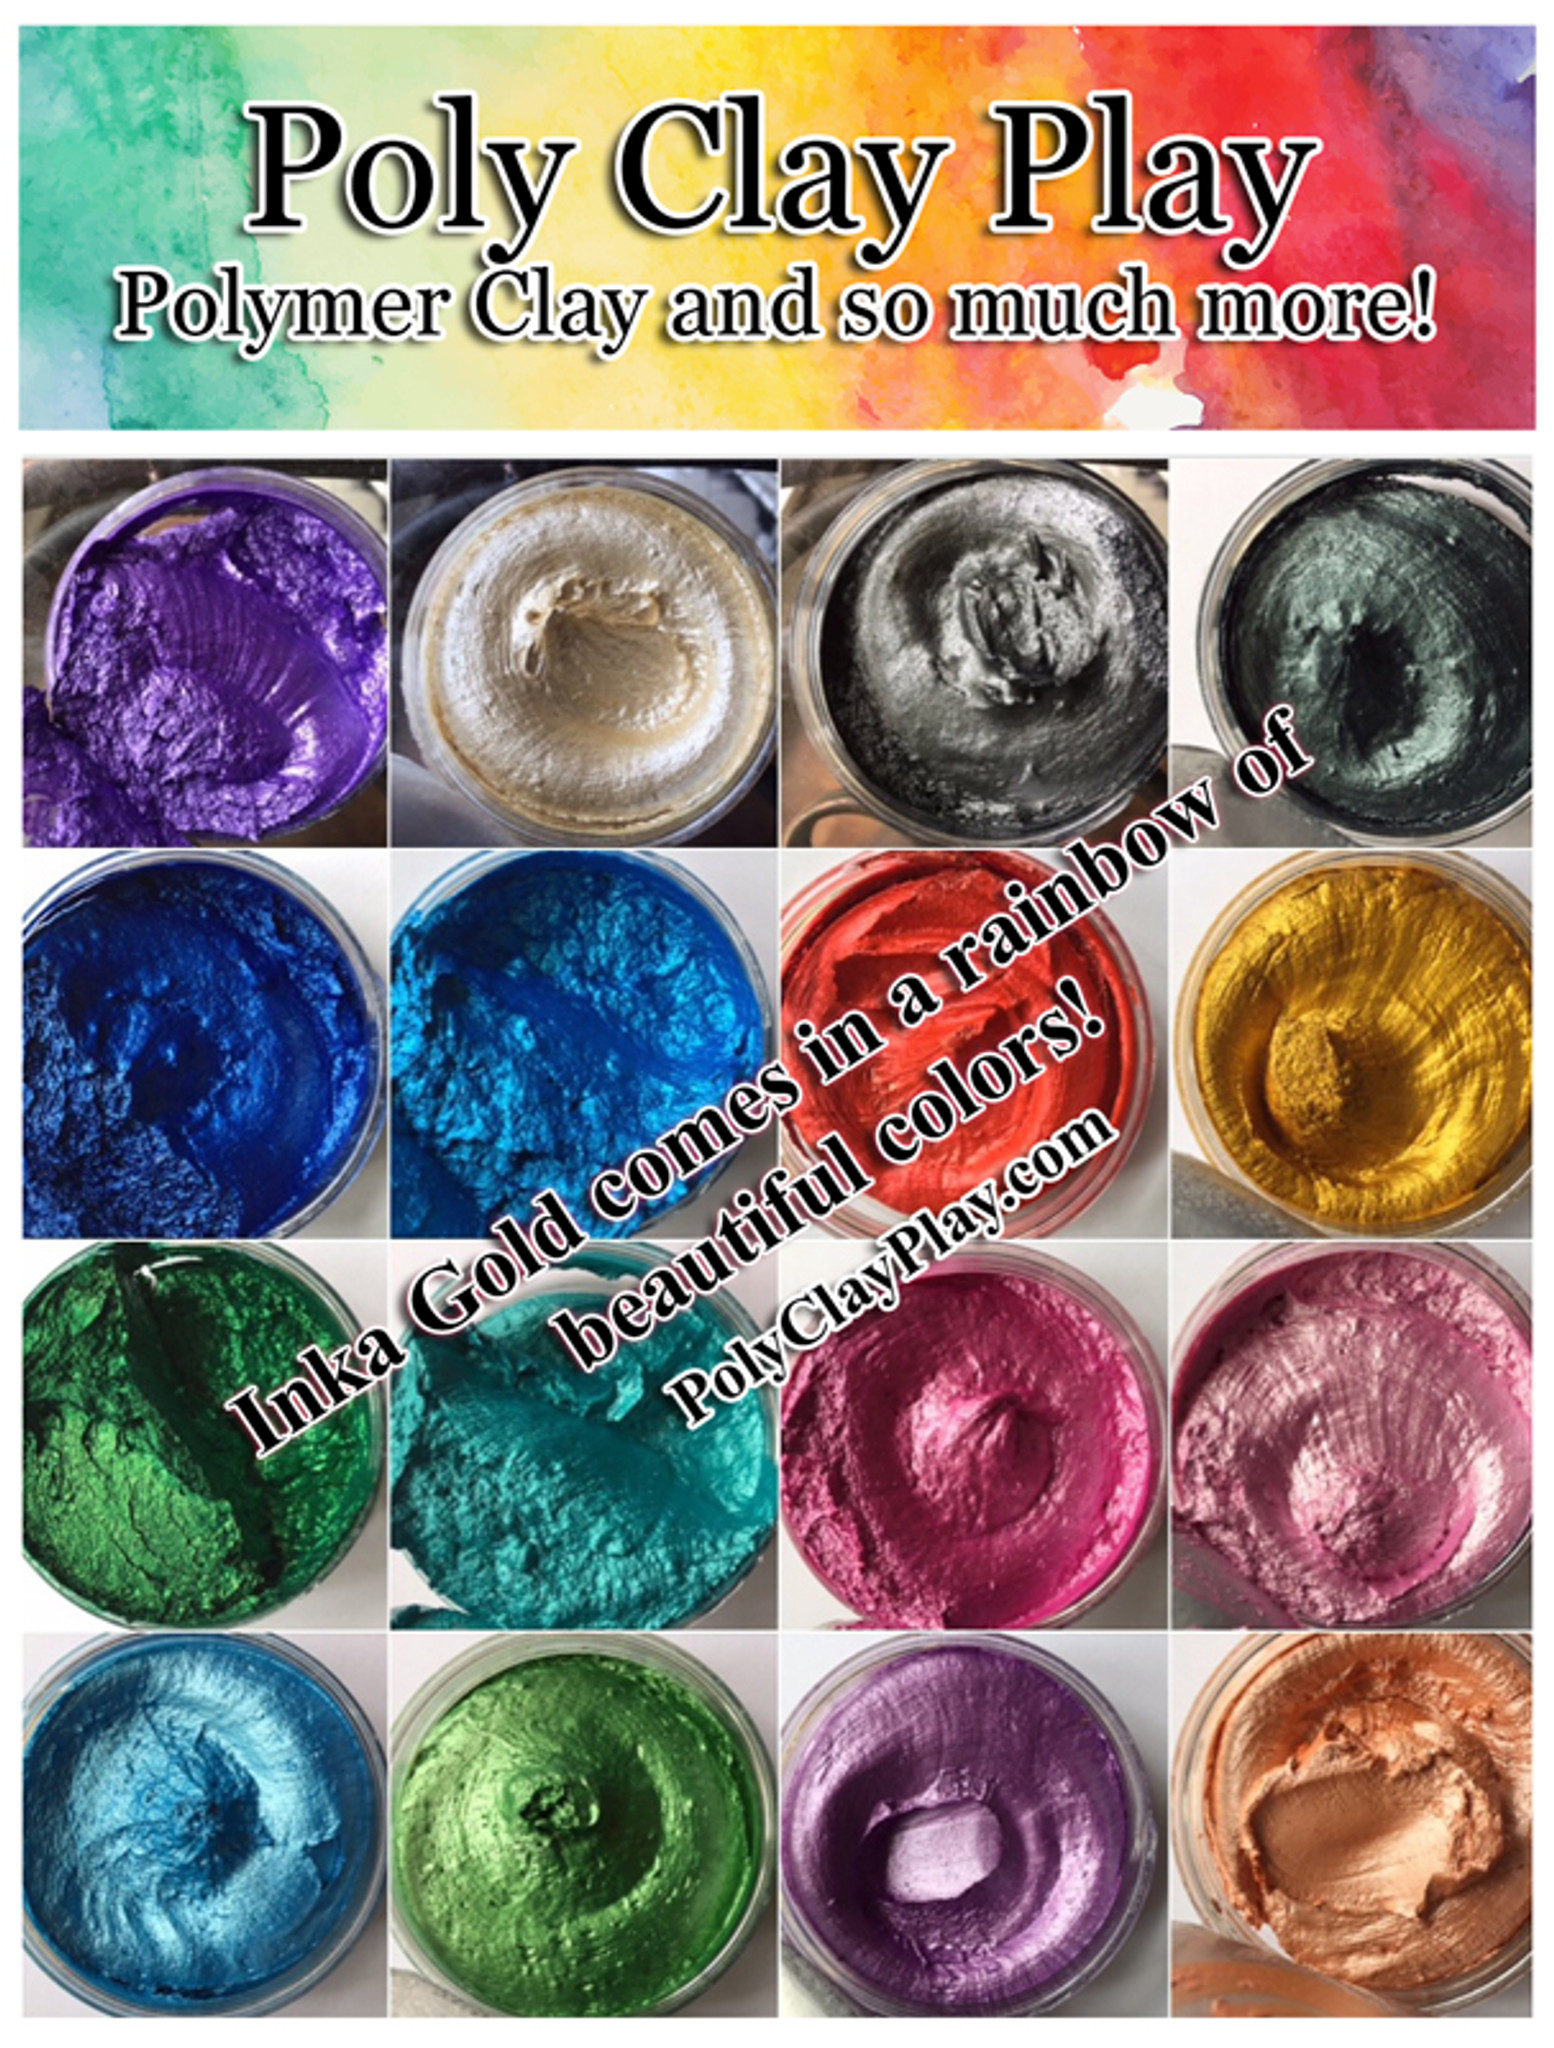 Inka Gold Sample Towers Poly Clay Play